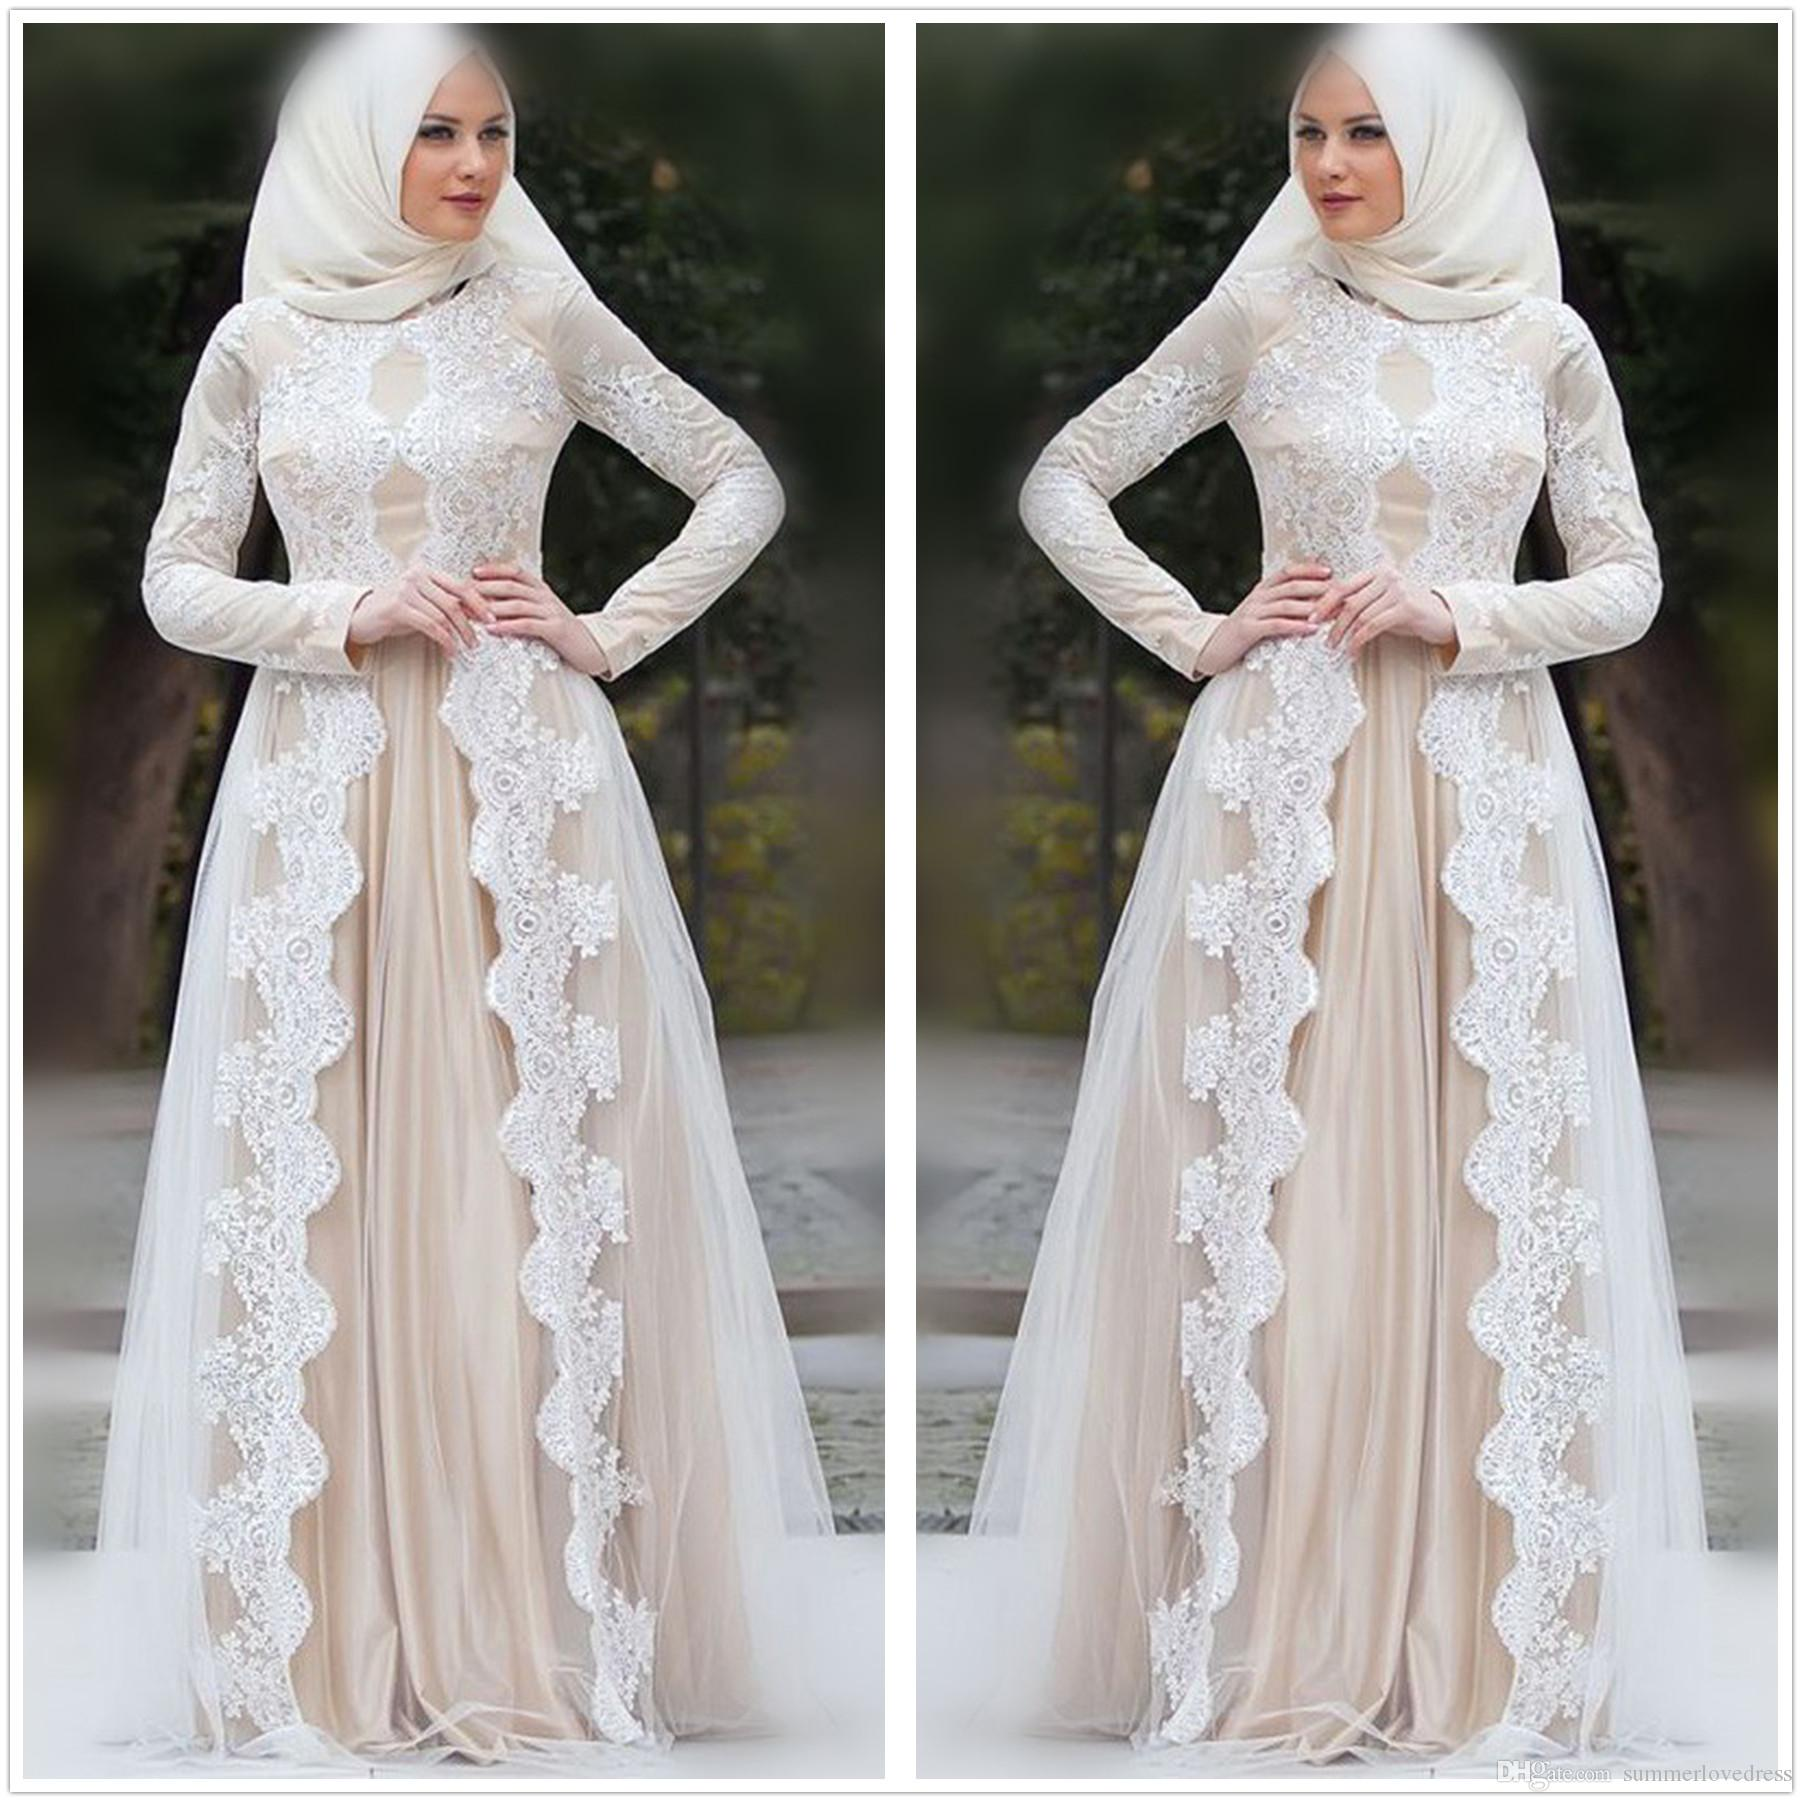 127386430e1 Discount 2019 Elegant Long Sleeves Lace A Line Wedding Dresses Champagne  Tulle Applique Floor Length Muslim Wedding Bridal Gowns Vintage Inspired  Wedding ...